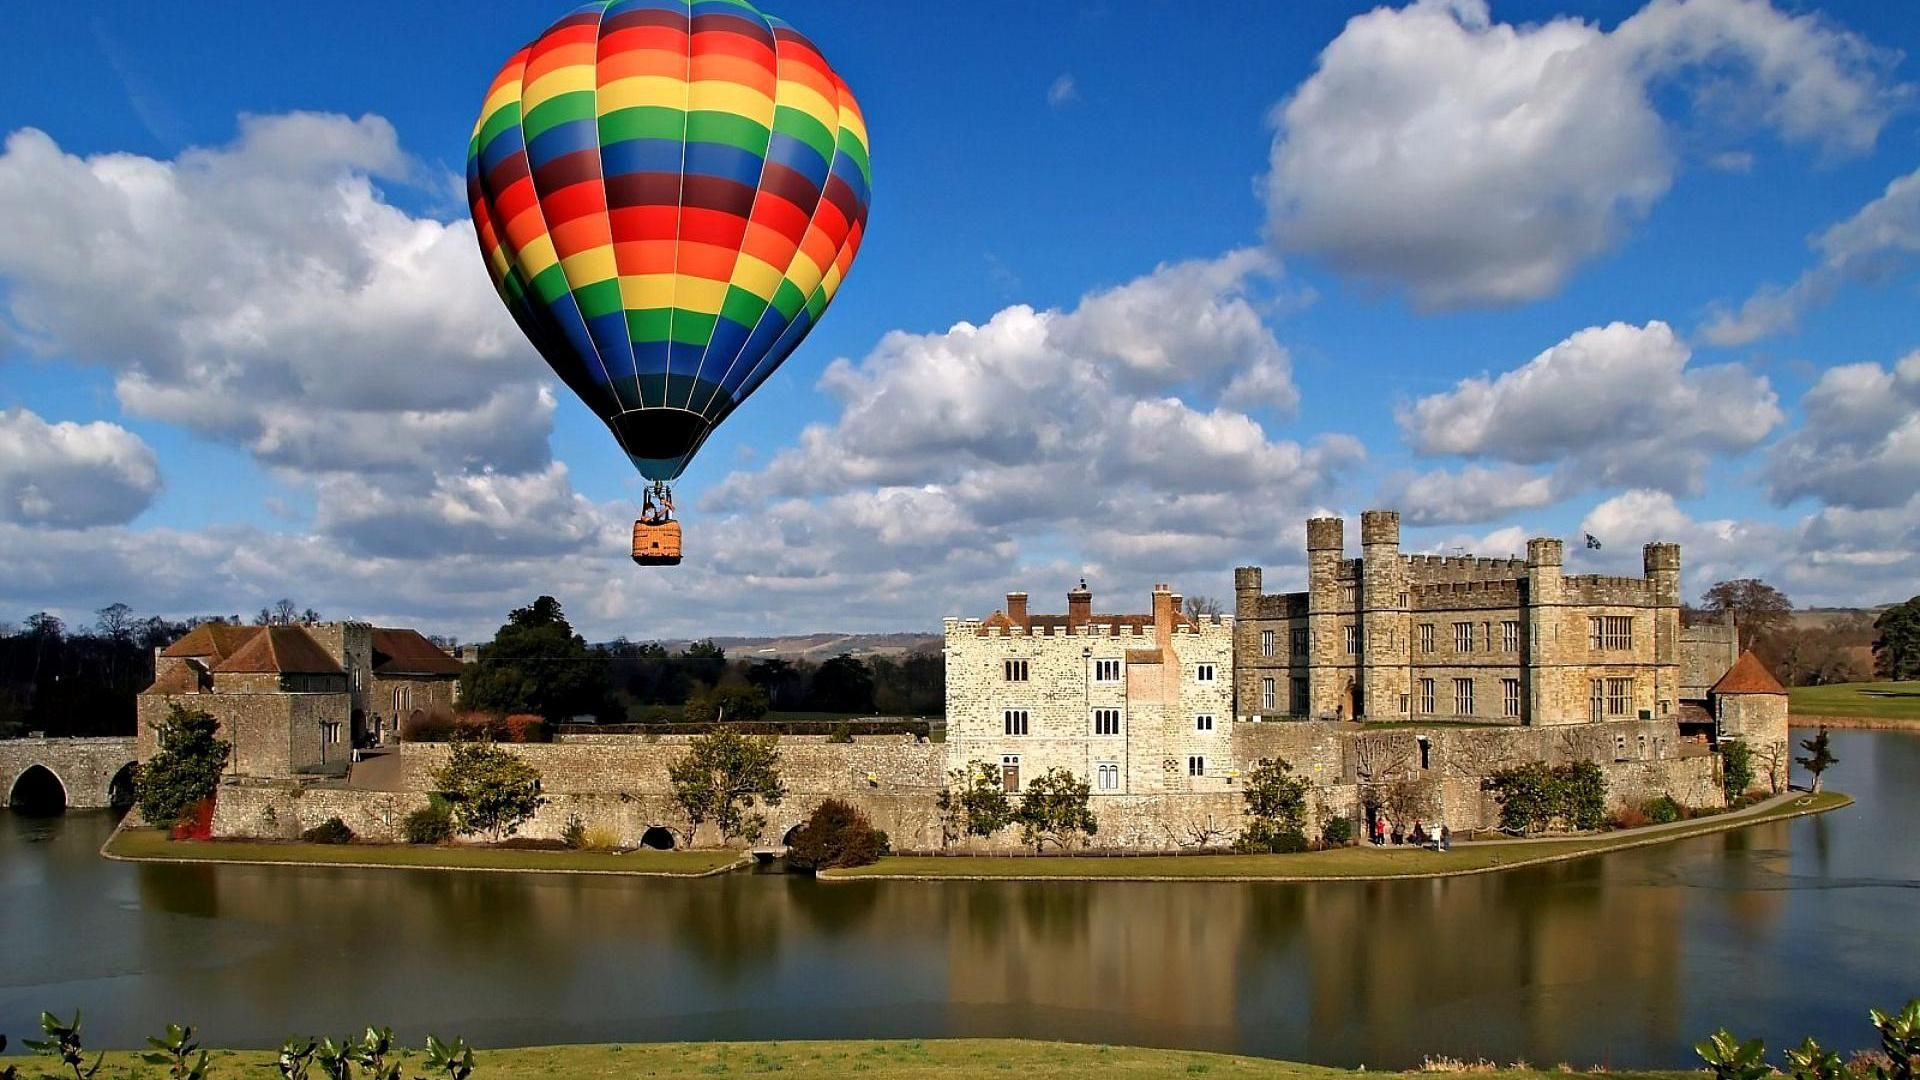 Colorful Hot Air Balloon Wallpaper Google Search Hot Air